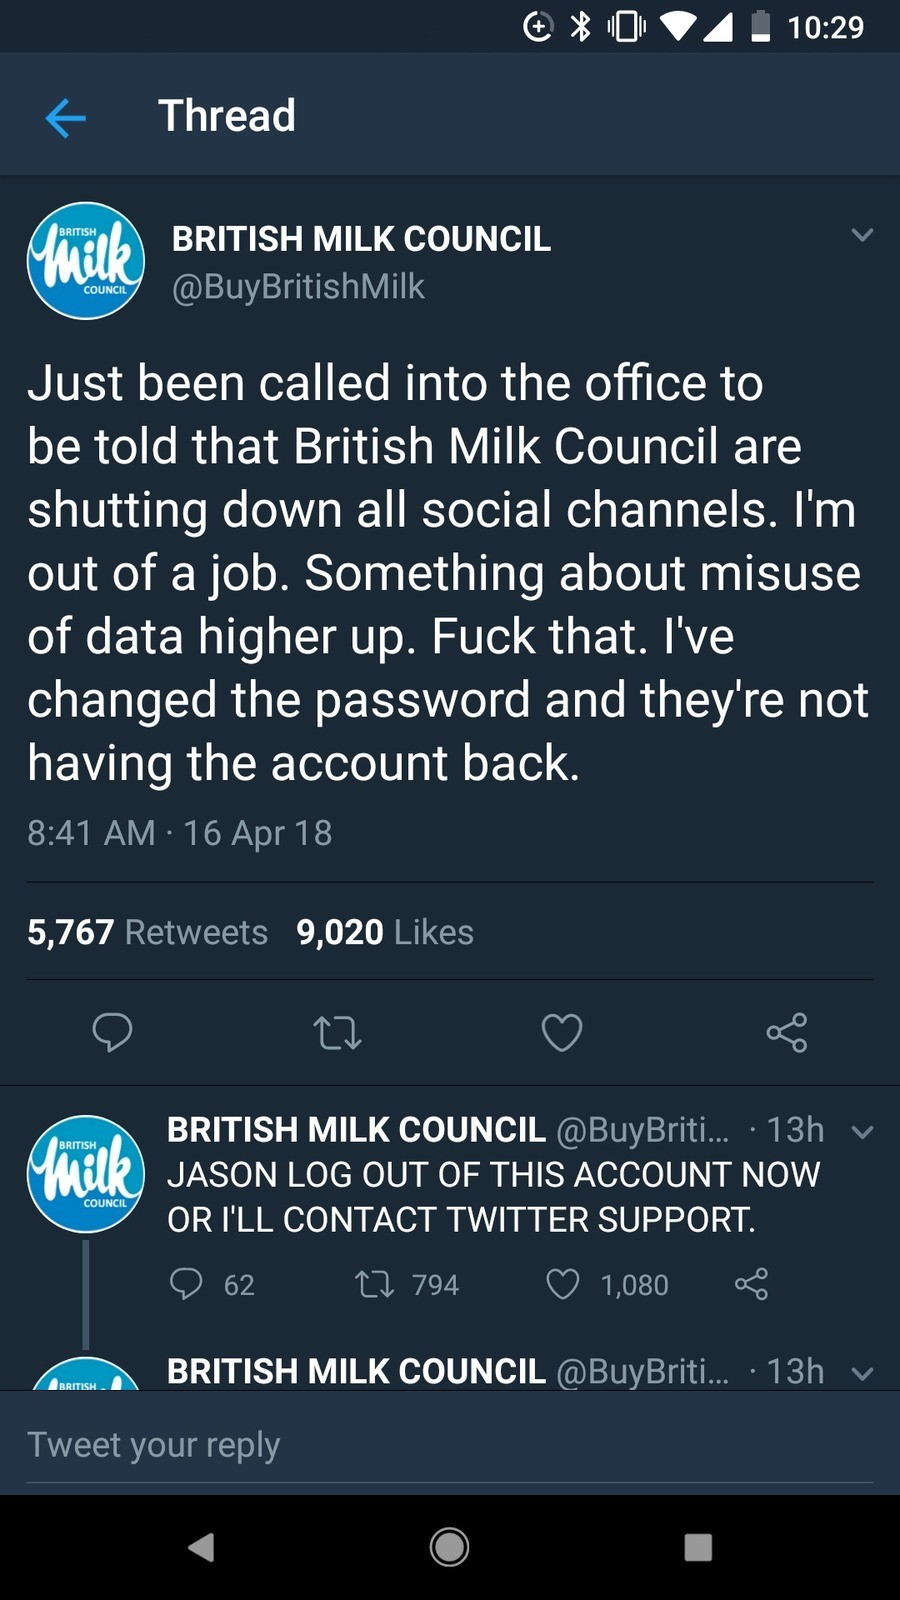 BMC. . Thread BRITISH MILK COUNCIL Just been called into the office to be told that British Milk Council are shutting down all social channels. I' m out of a jo